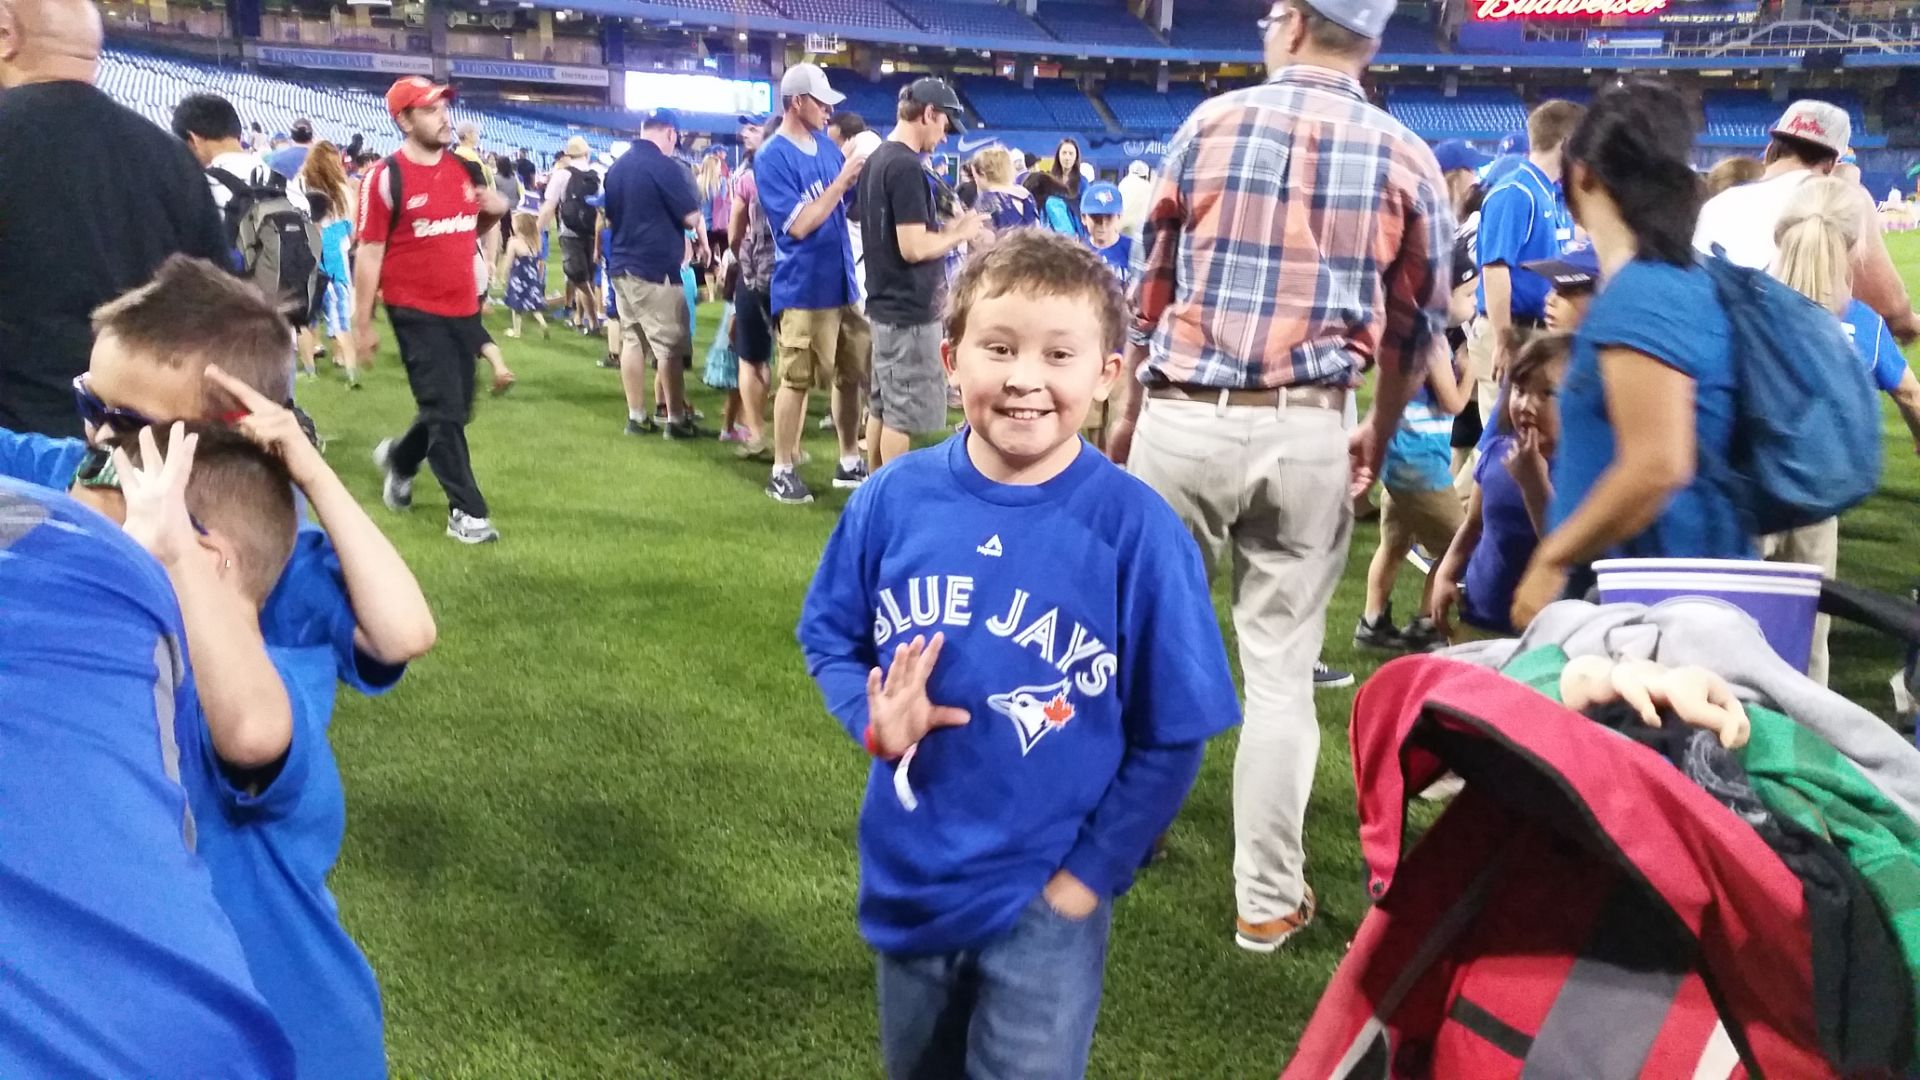 Daniel at Jays Game.jpeg